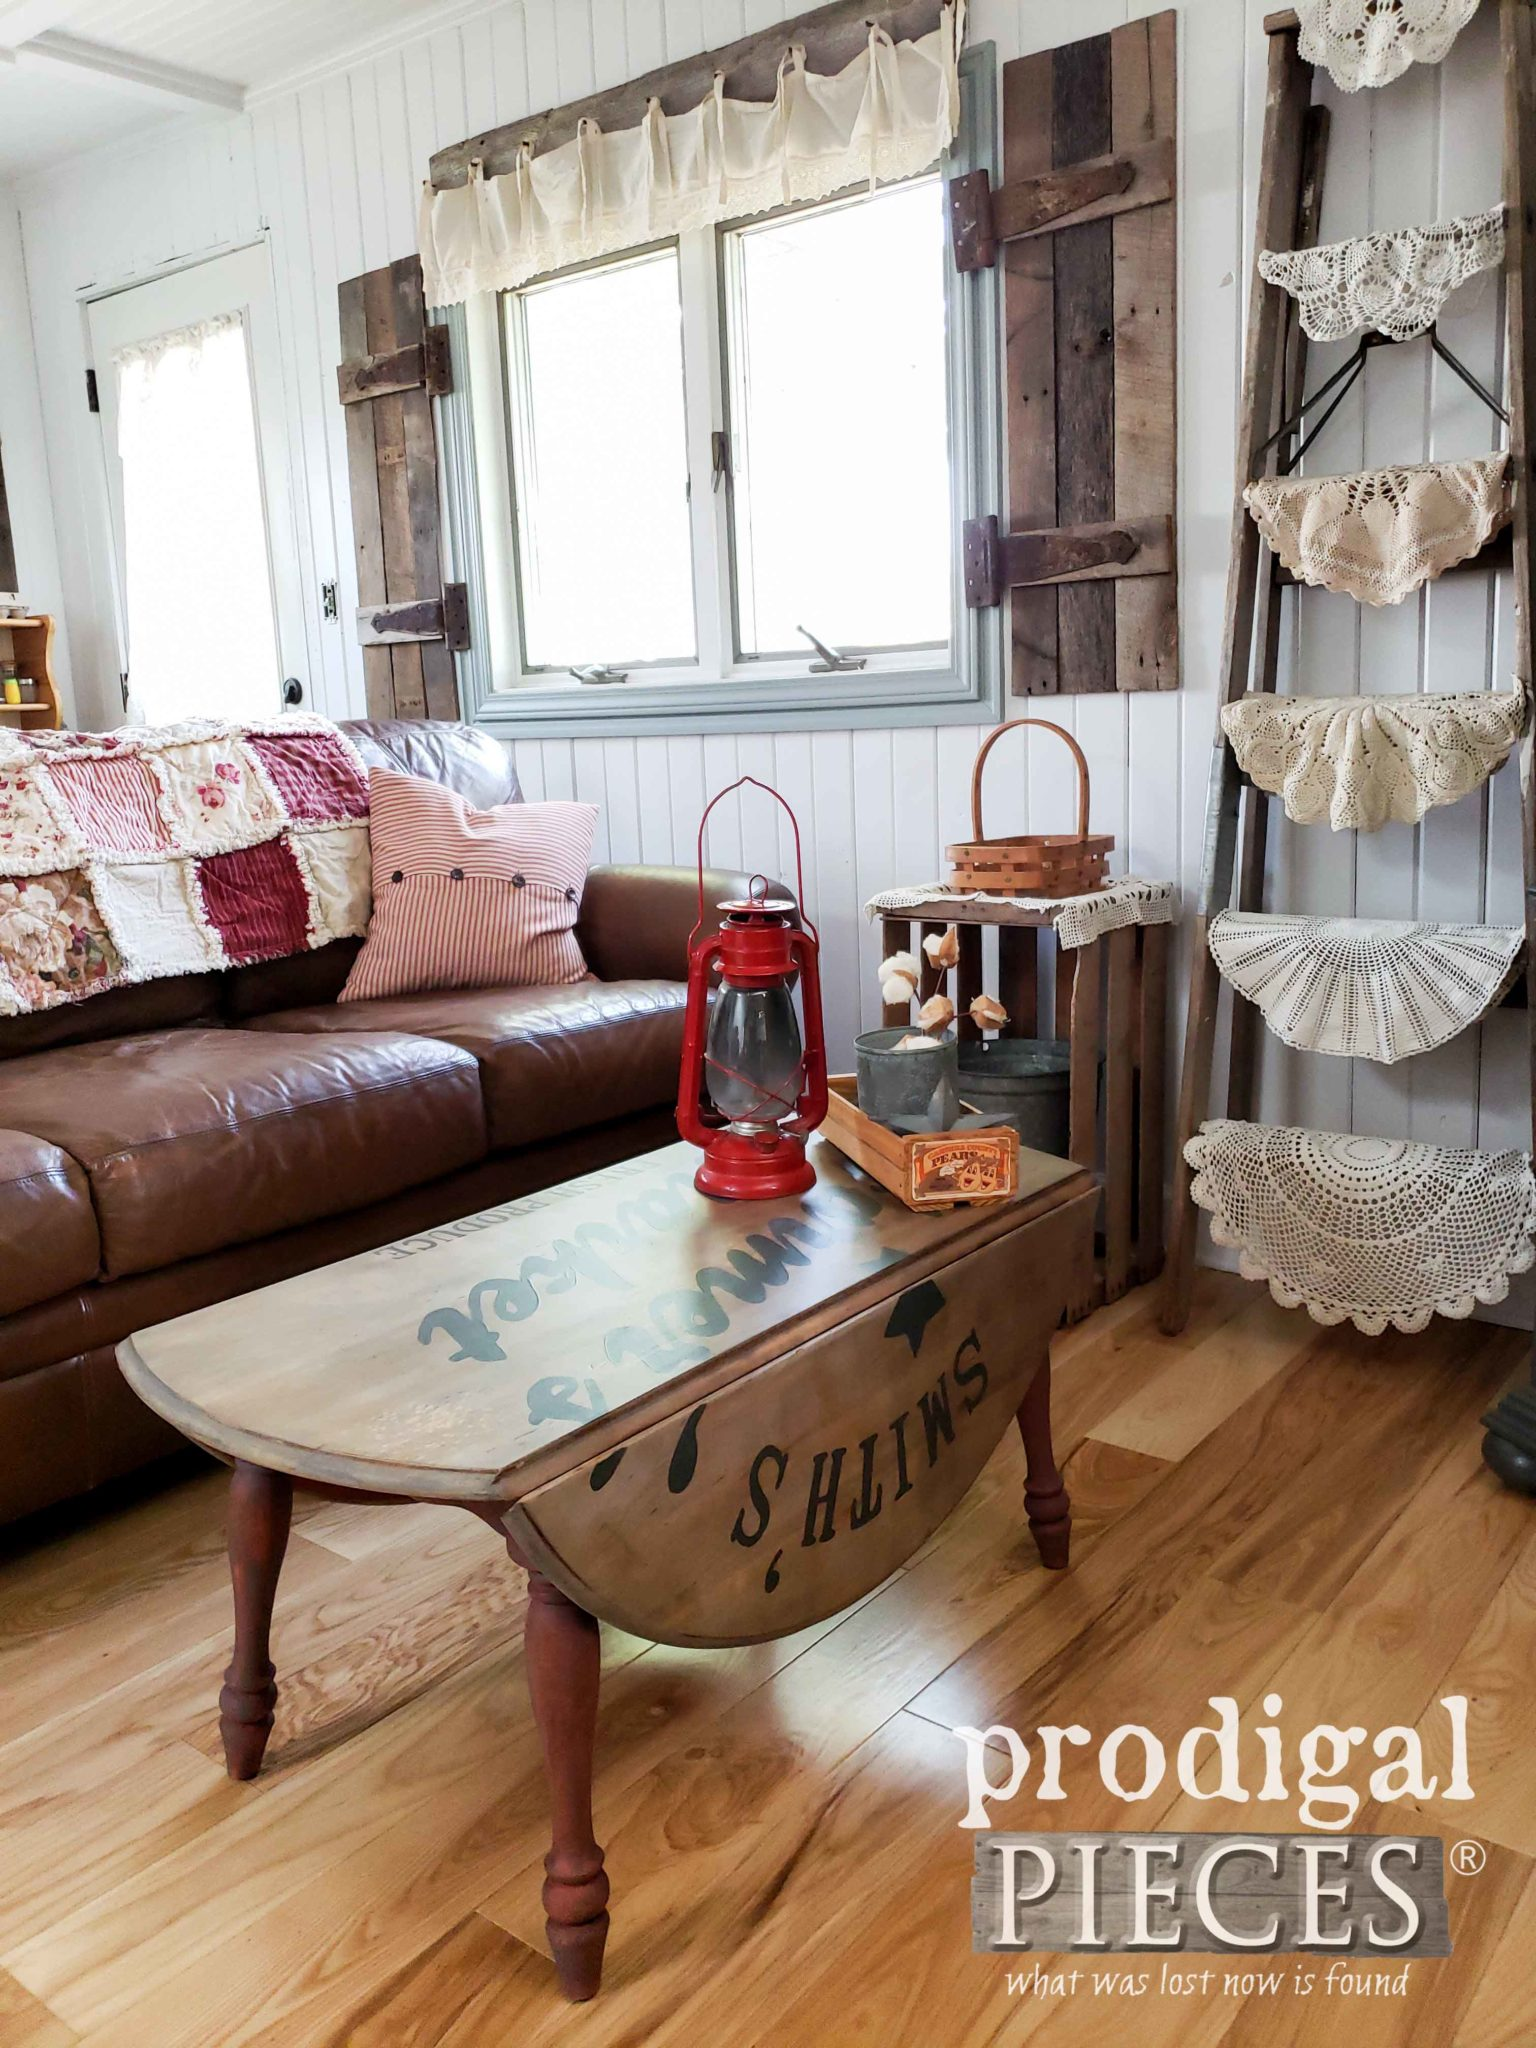 Rustic Farmhouse Style Living Room with Drop-Leaf Table by Larissa of Prodigal Pieces | prodigalpieces.com #prodigalpieces #home #furniture #homedecor #diy #vintage #farmhouse